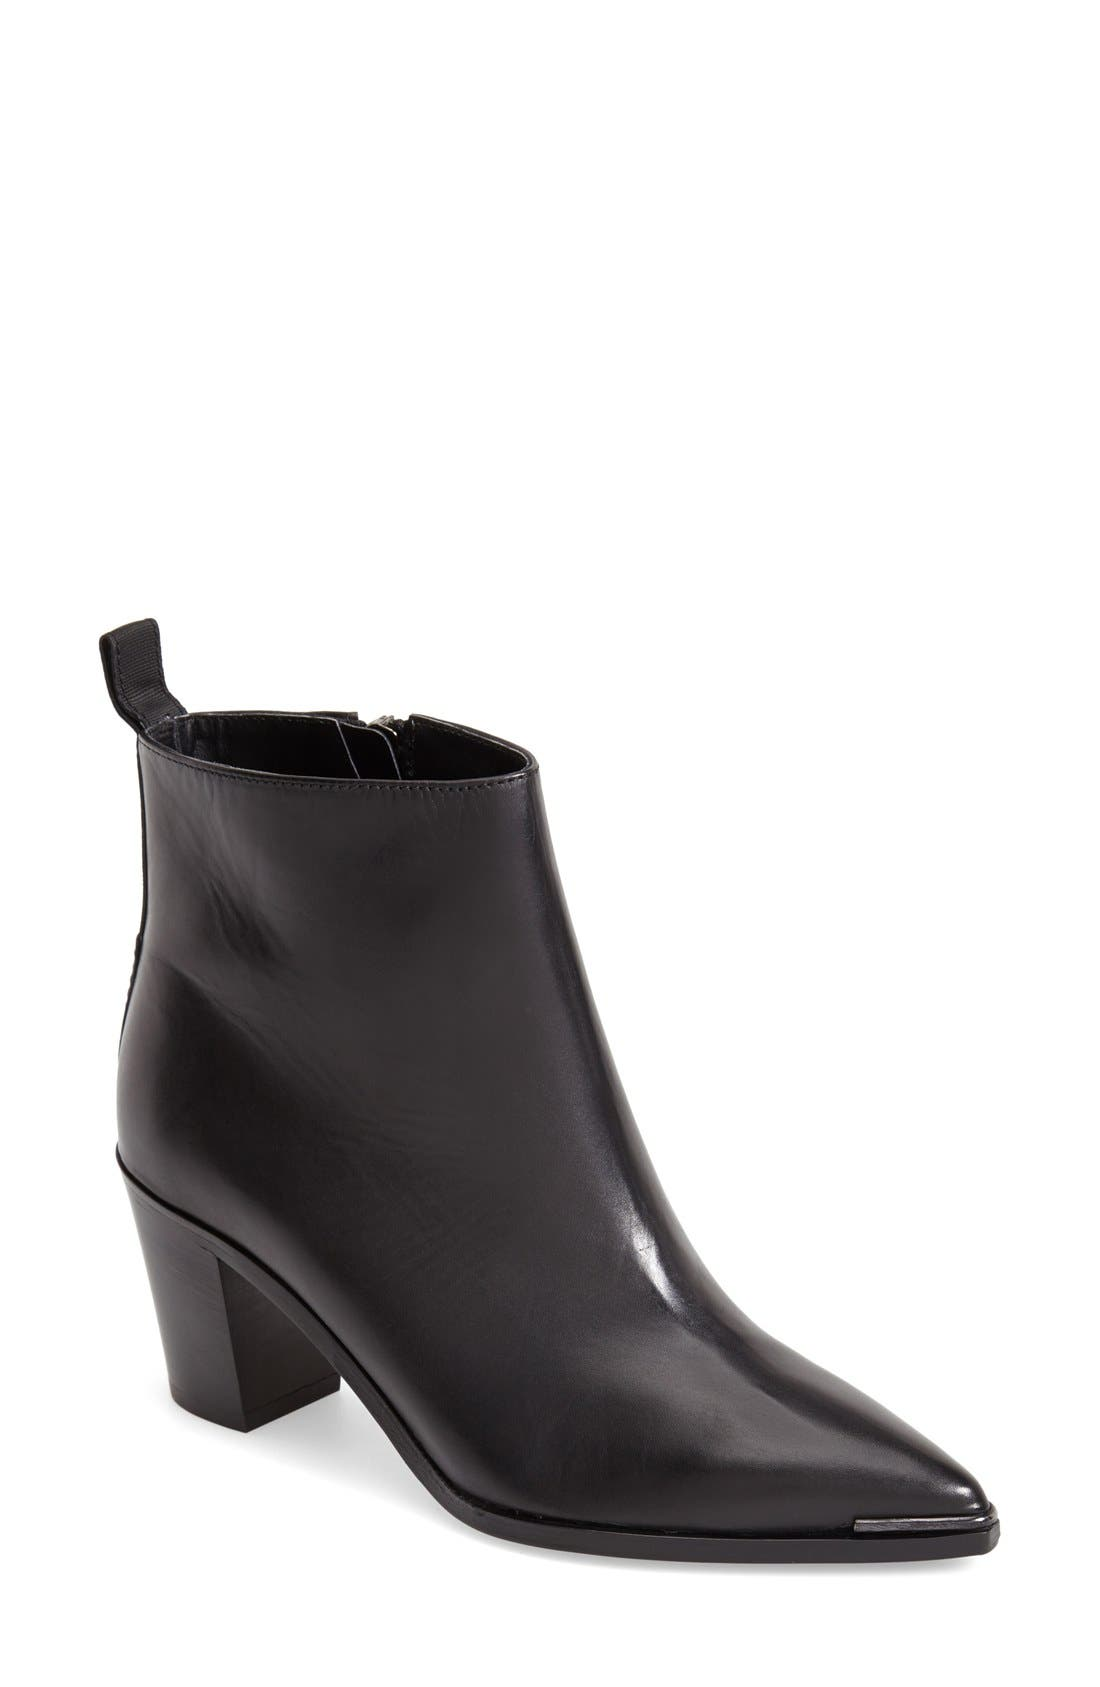 Alternate Image 1 Selected - ACNE Studios 'Loma' Pointy Toe Leather Bootie (Women)